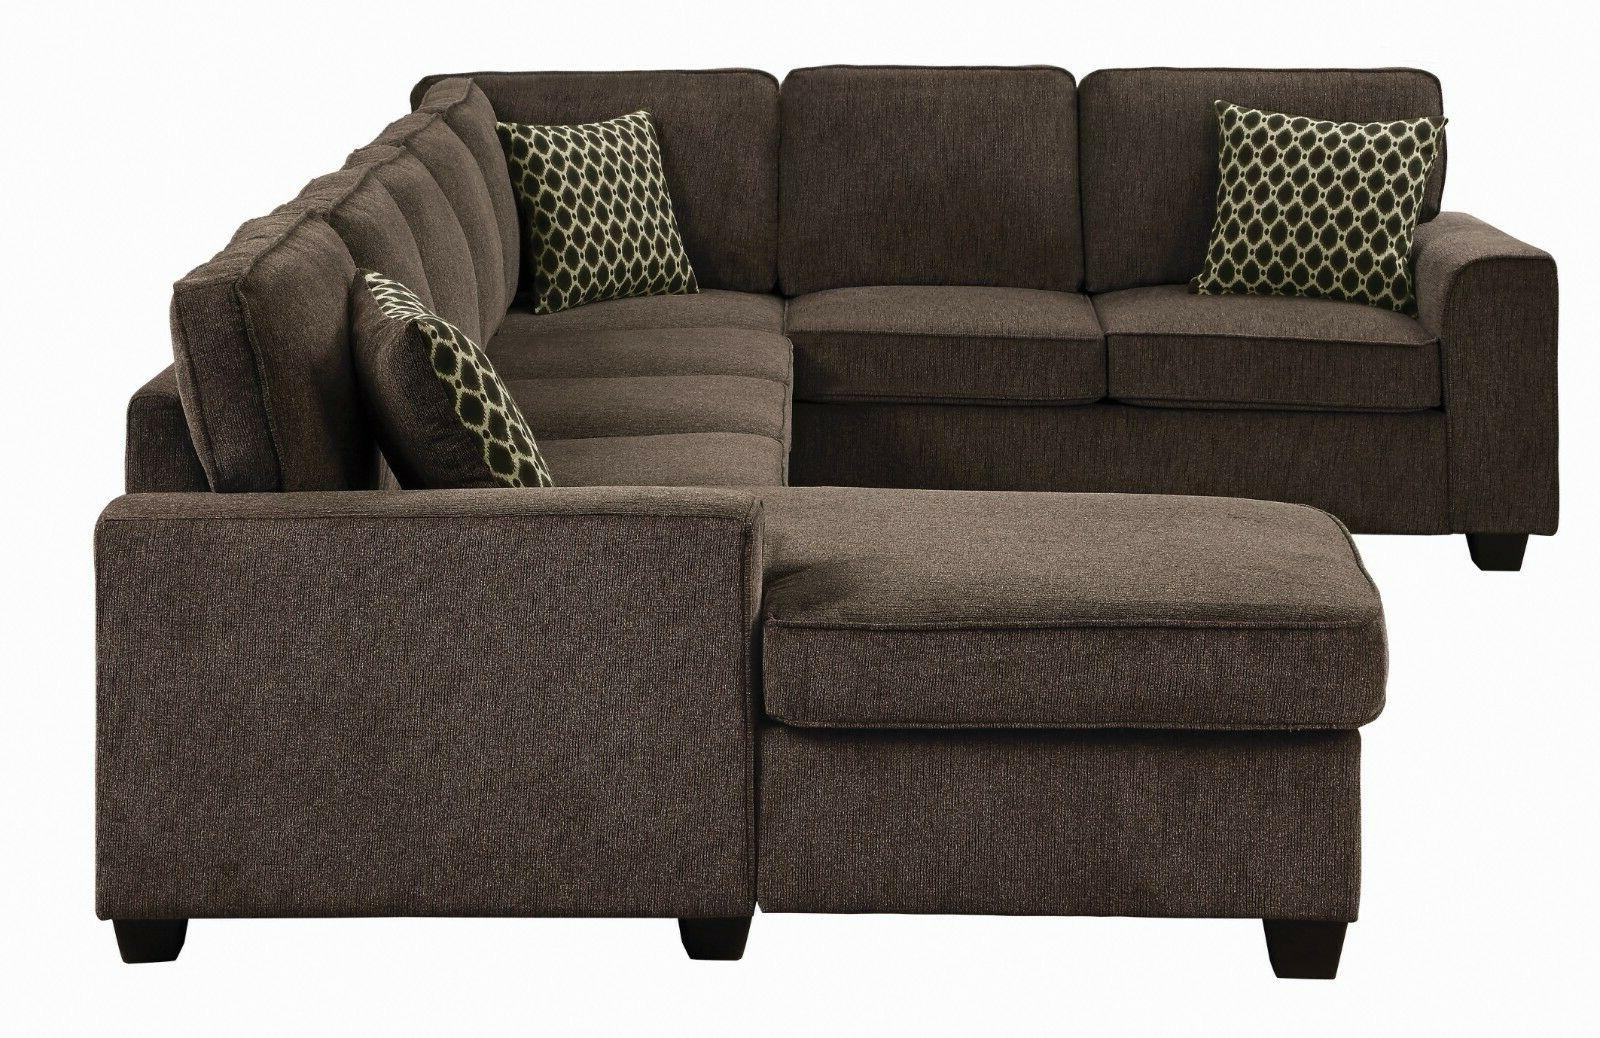 Transitional 7-Seater Fabric Sofa with Storage